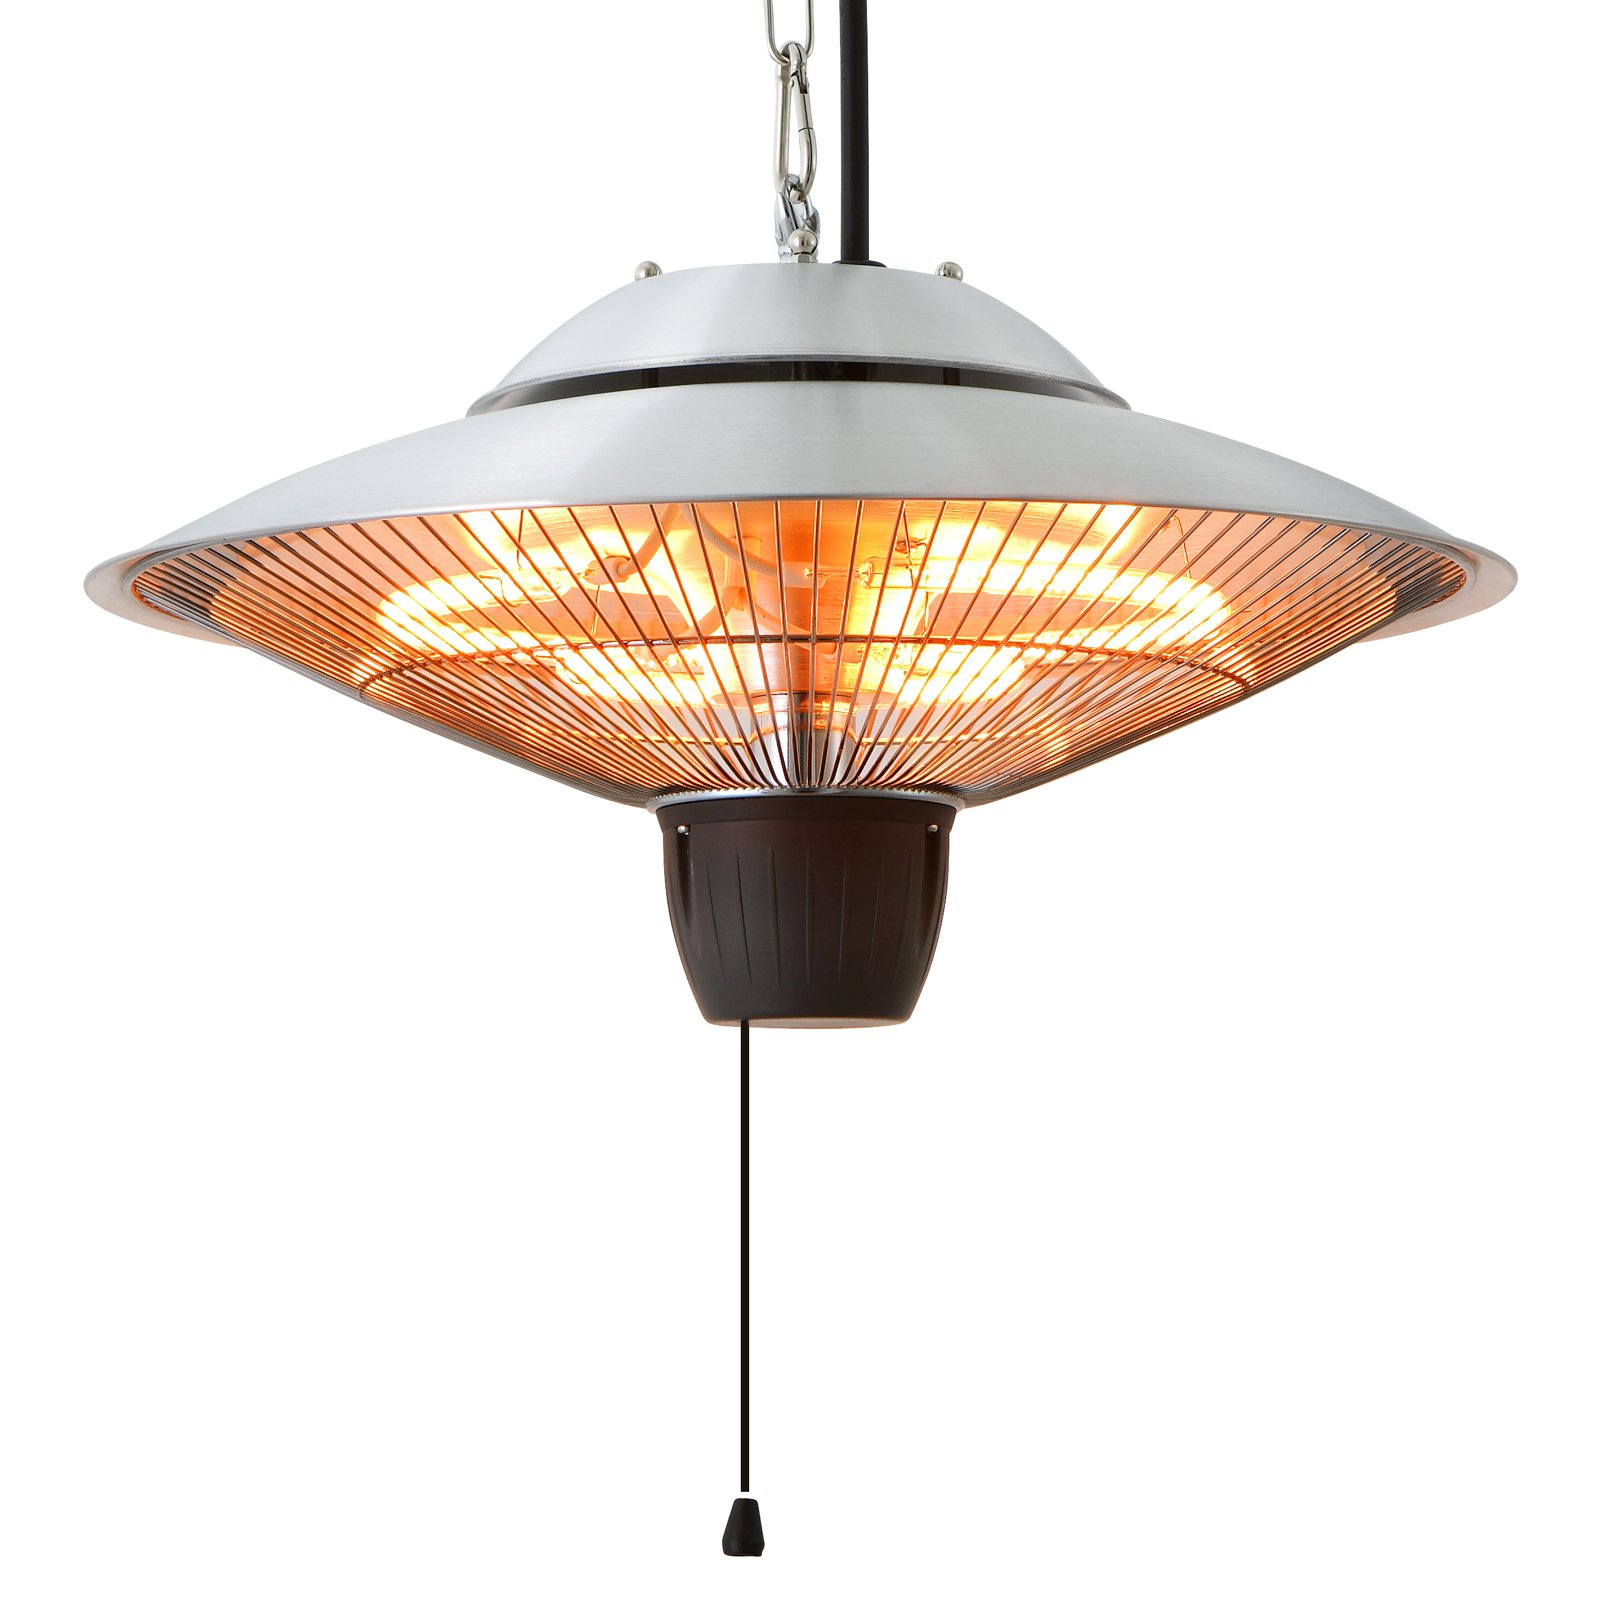 Superieur EnerG+ HEA 21524 Hanging Infrared Electric Heater, 1500W, Silver    Walmart.com